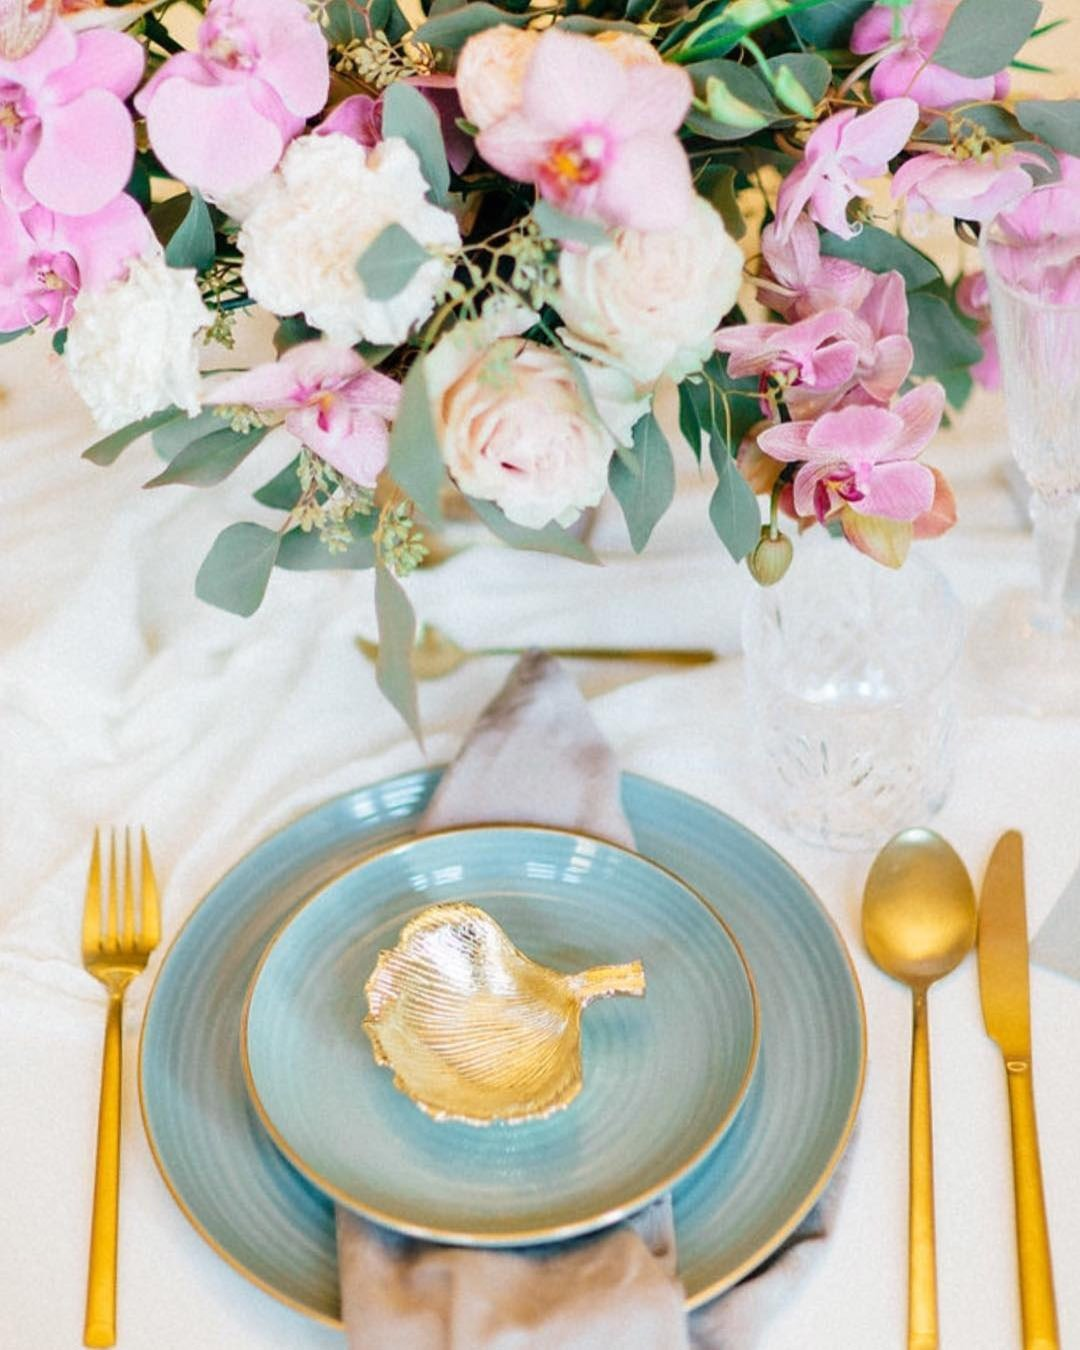 wedding colors Petal Pink Cornflower Blue Mauve wedding color scheme flowers table setting